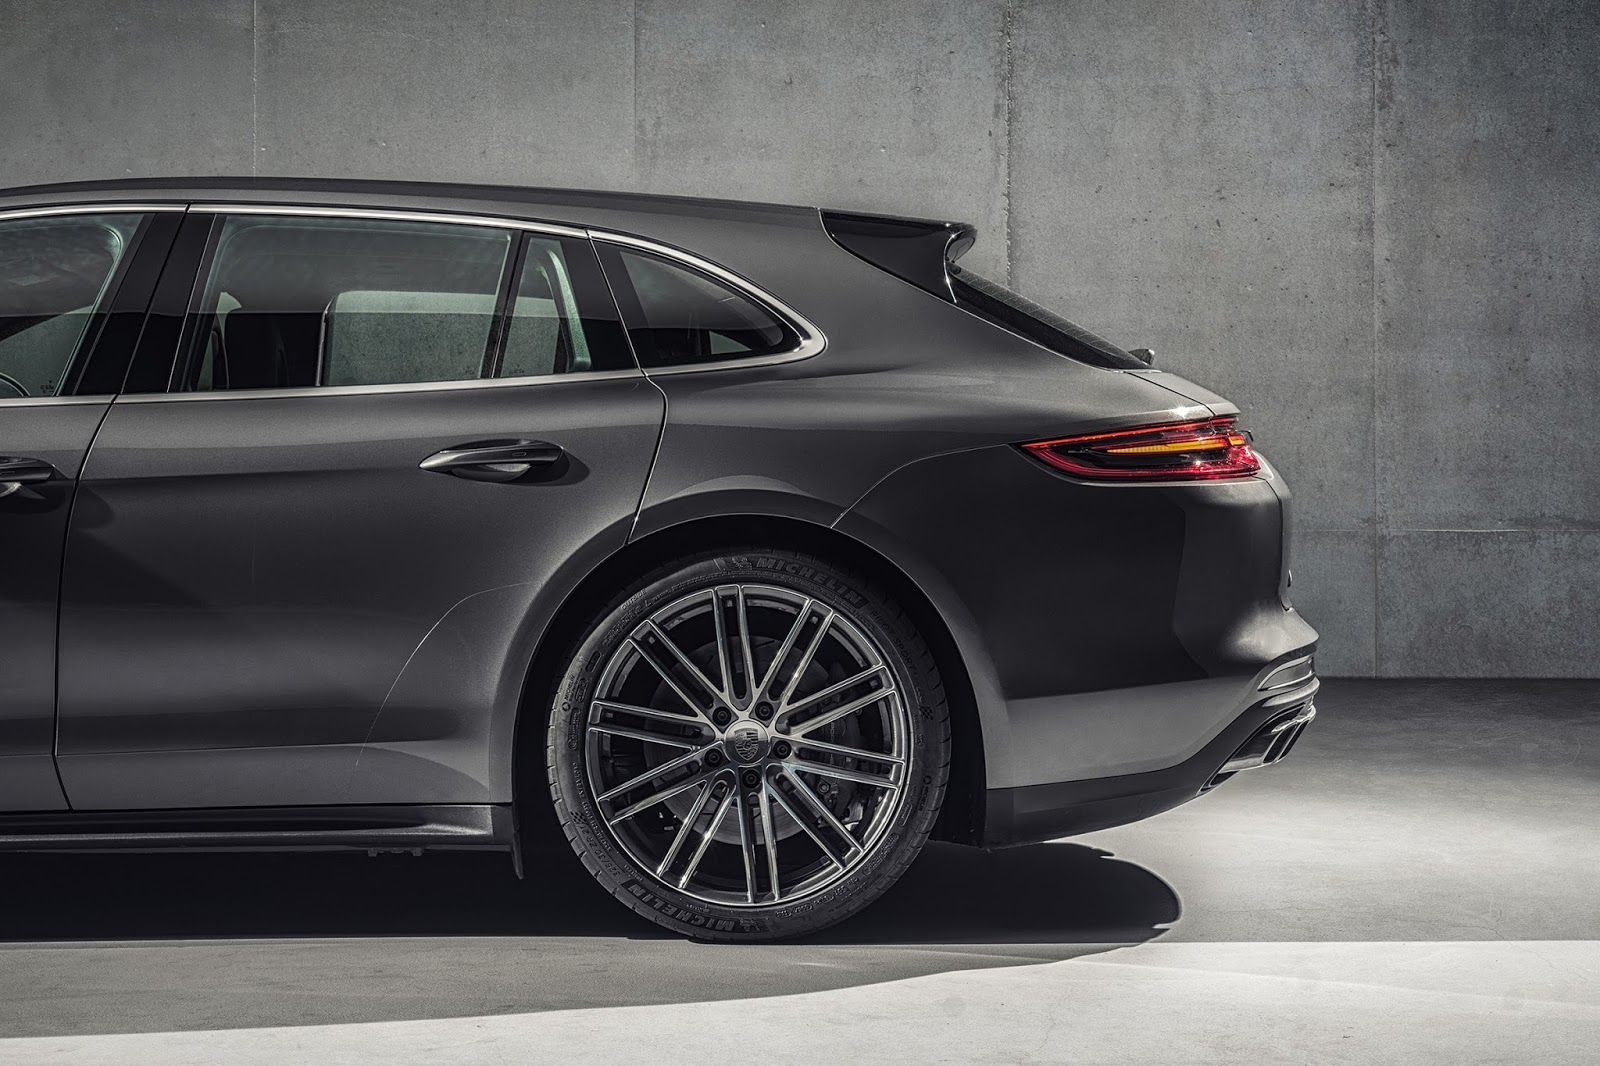 Porsche Panamera Sport Turismo Is The Finest Of Them All